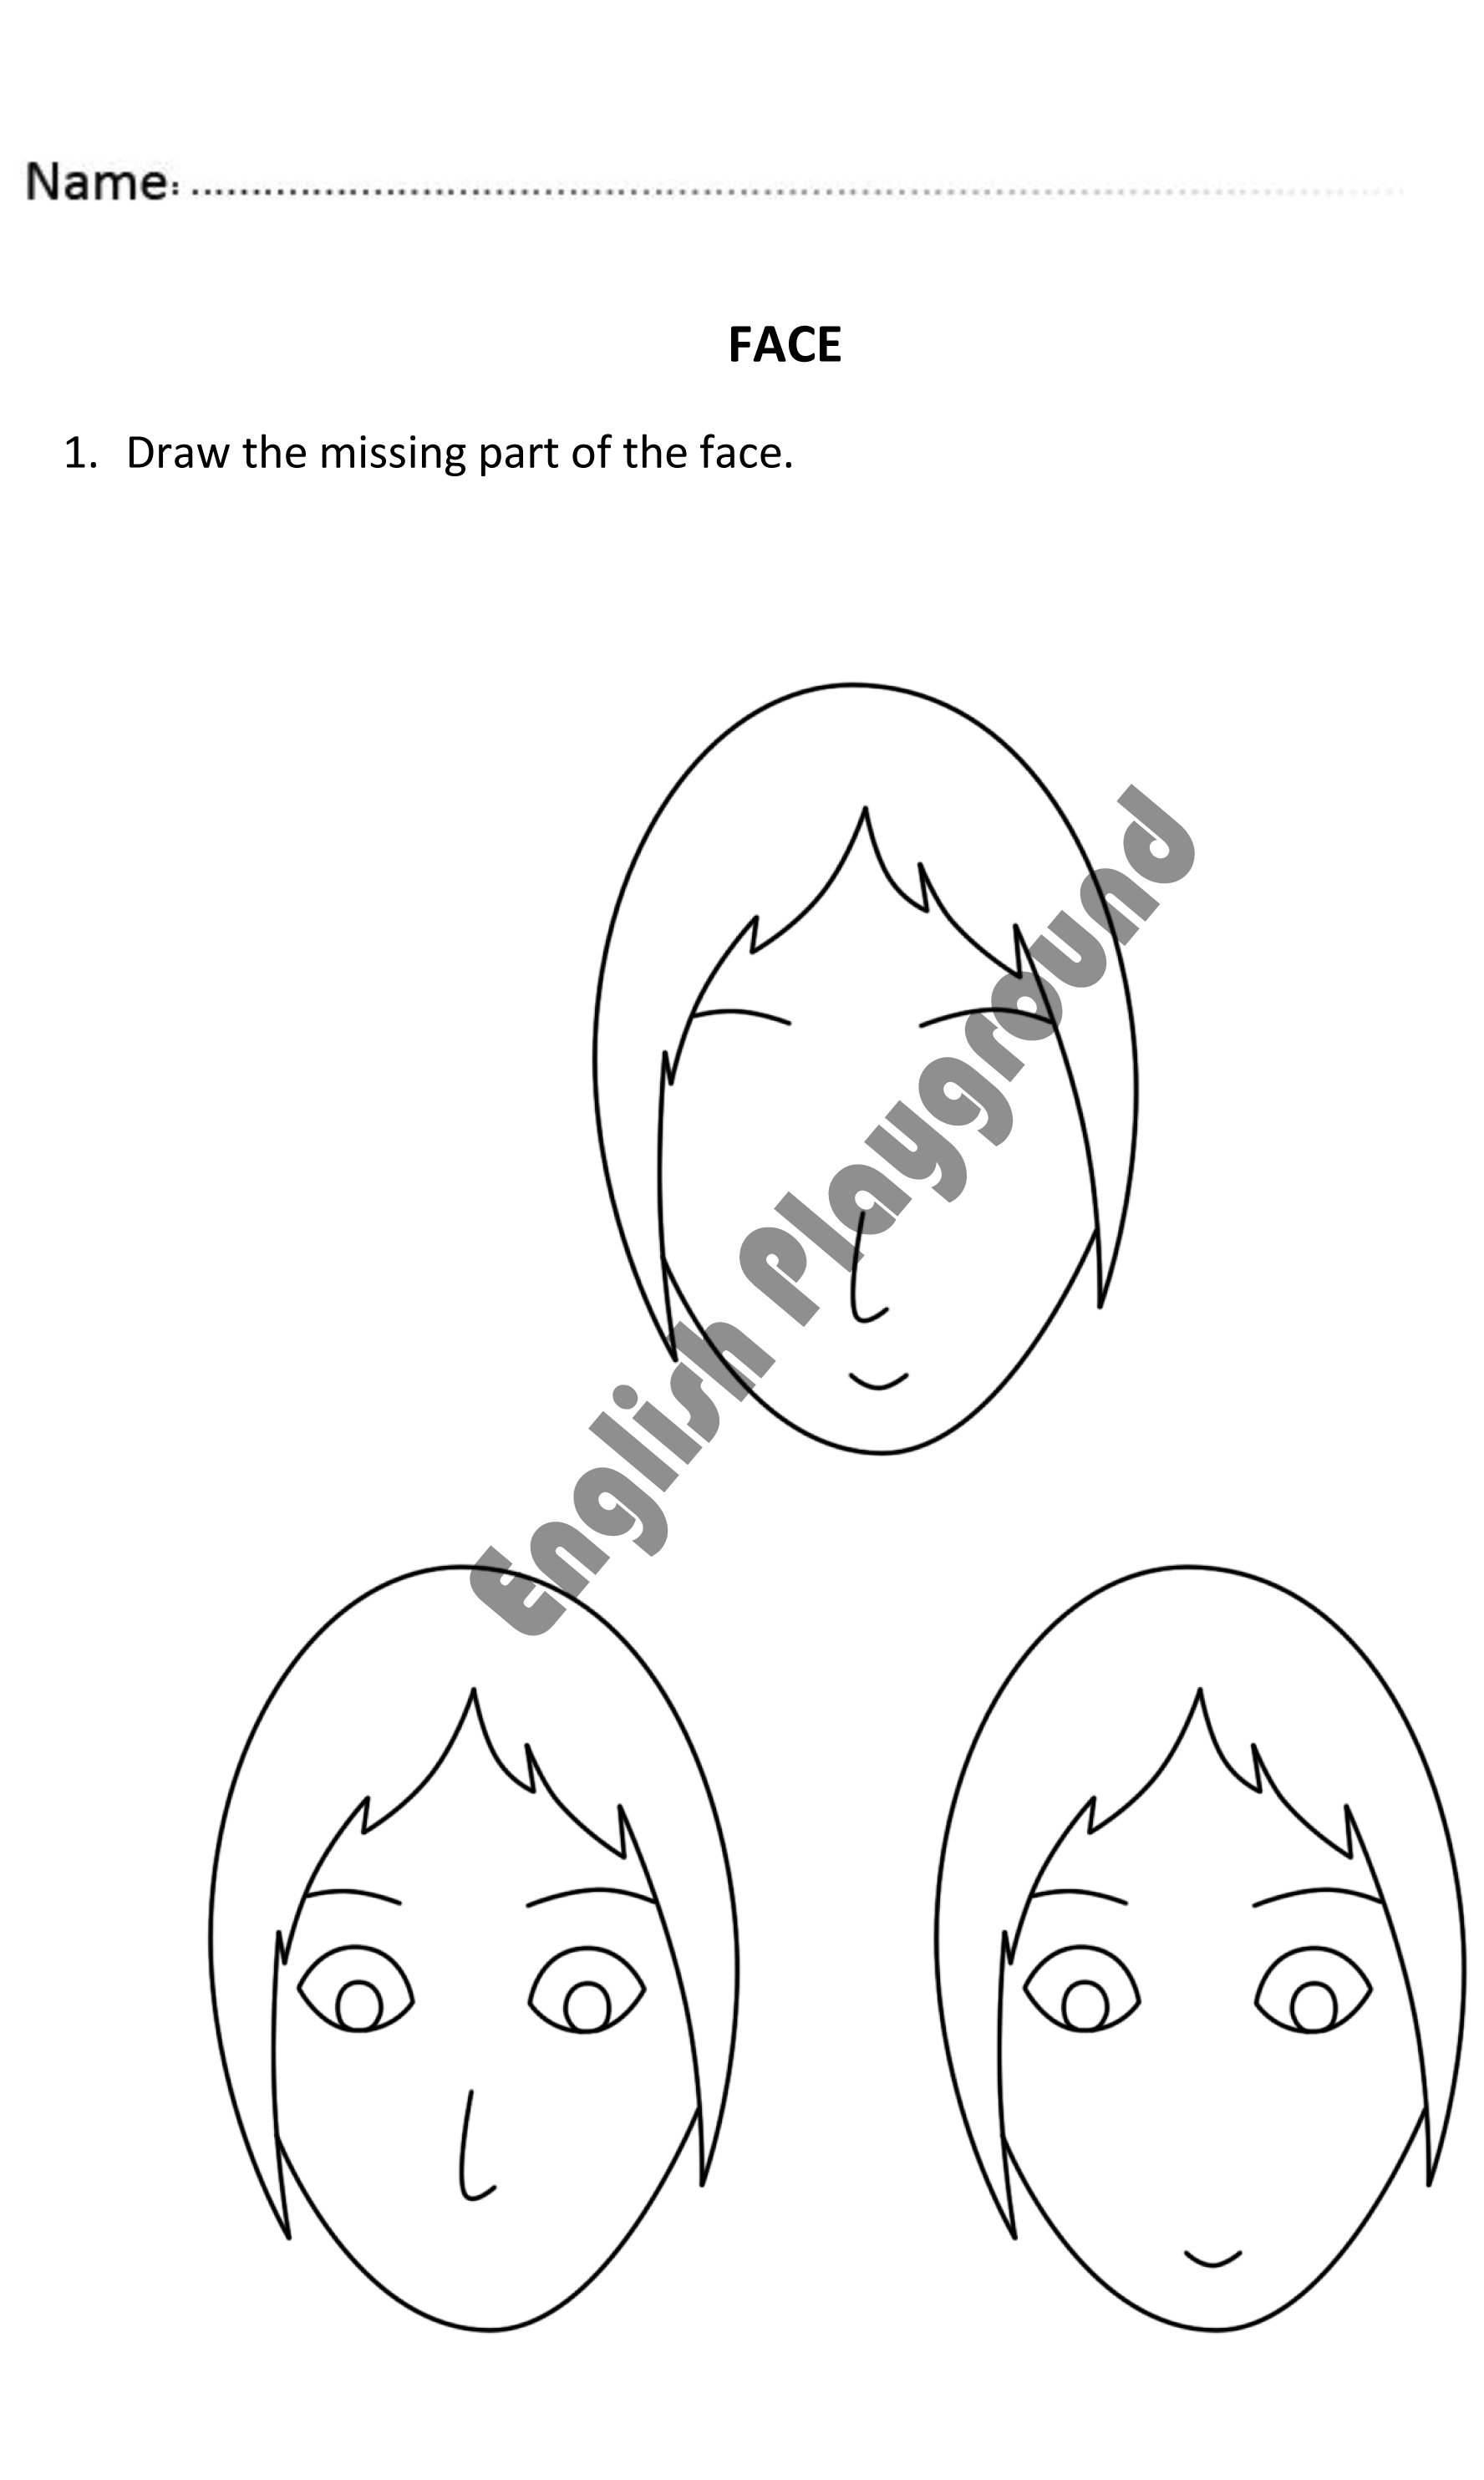 worksheet Parts Of Face Worksheet face drawing for nursery and reception students fun worksheet to teach parts learningface